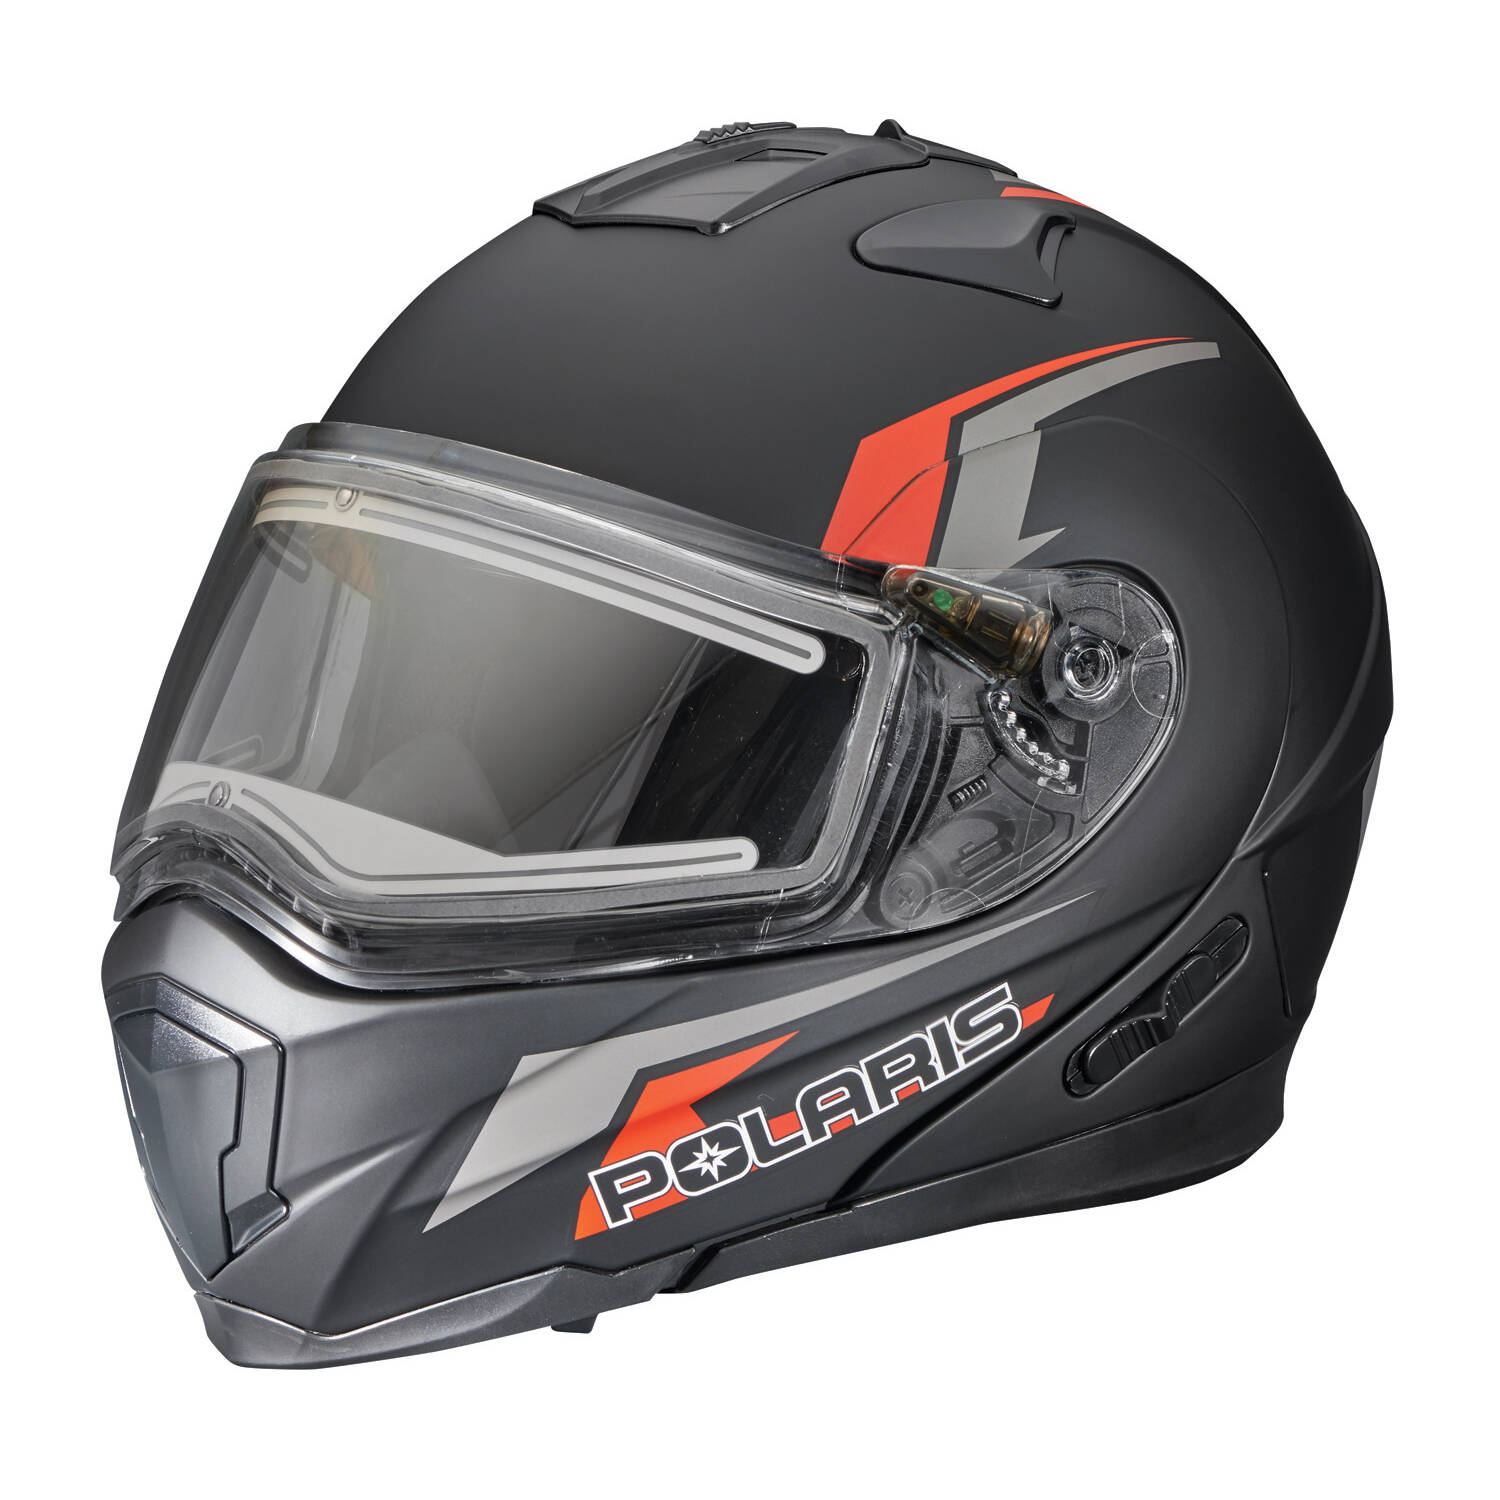 Modular Adult Helmet with Electric Shield, Black/Red